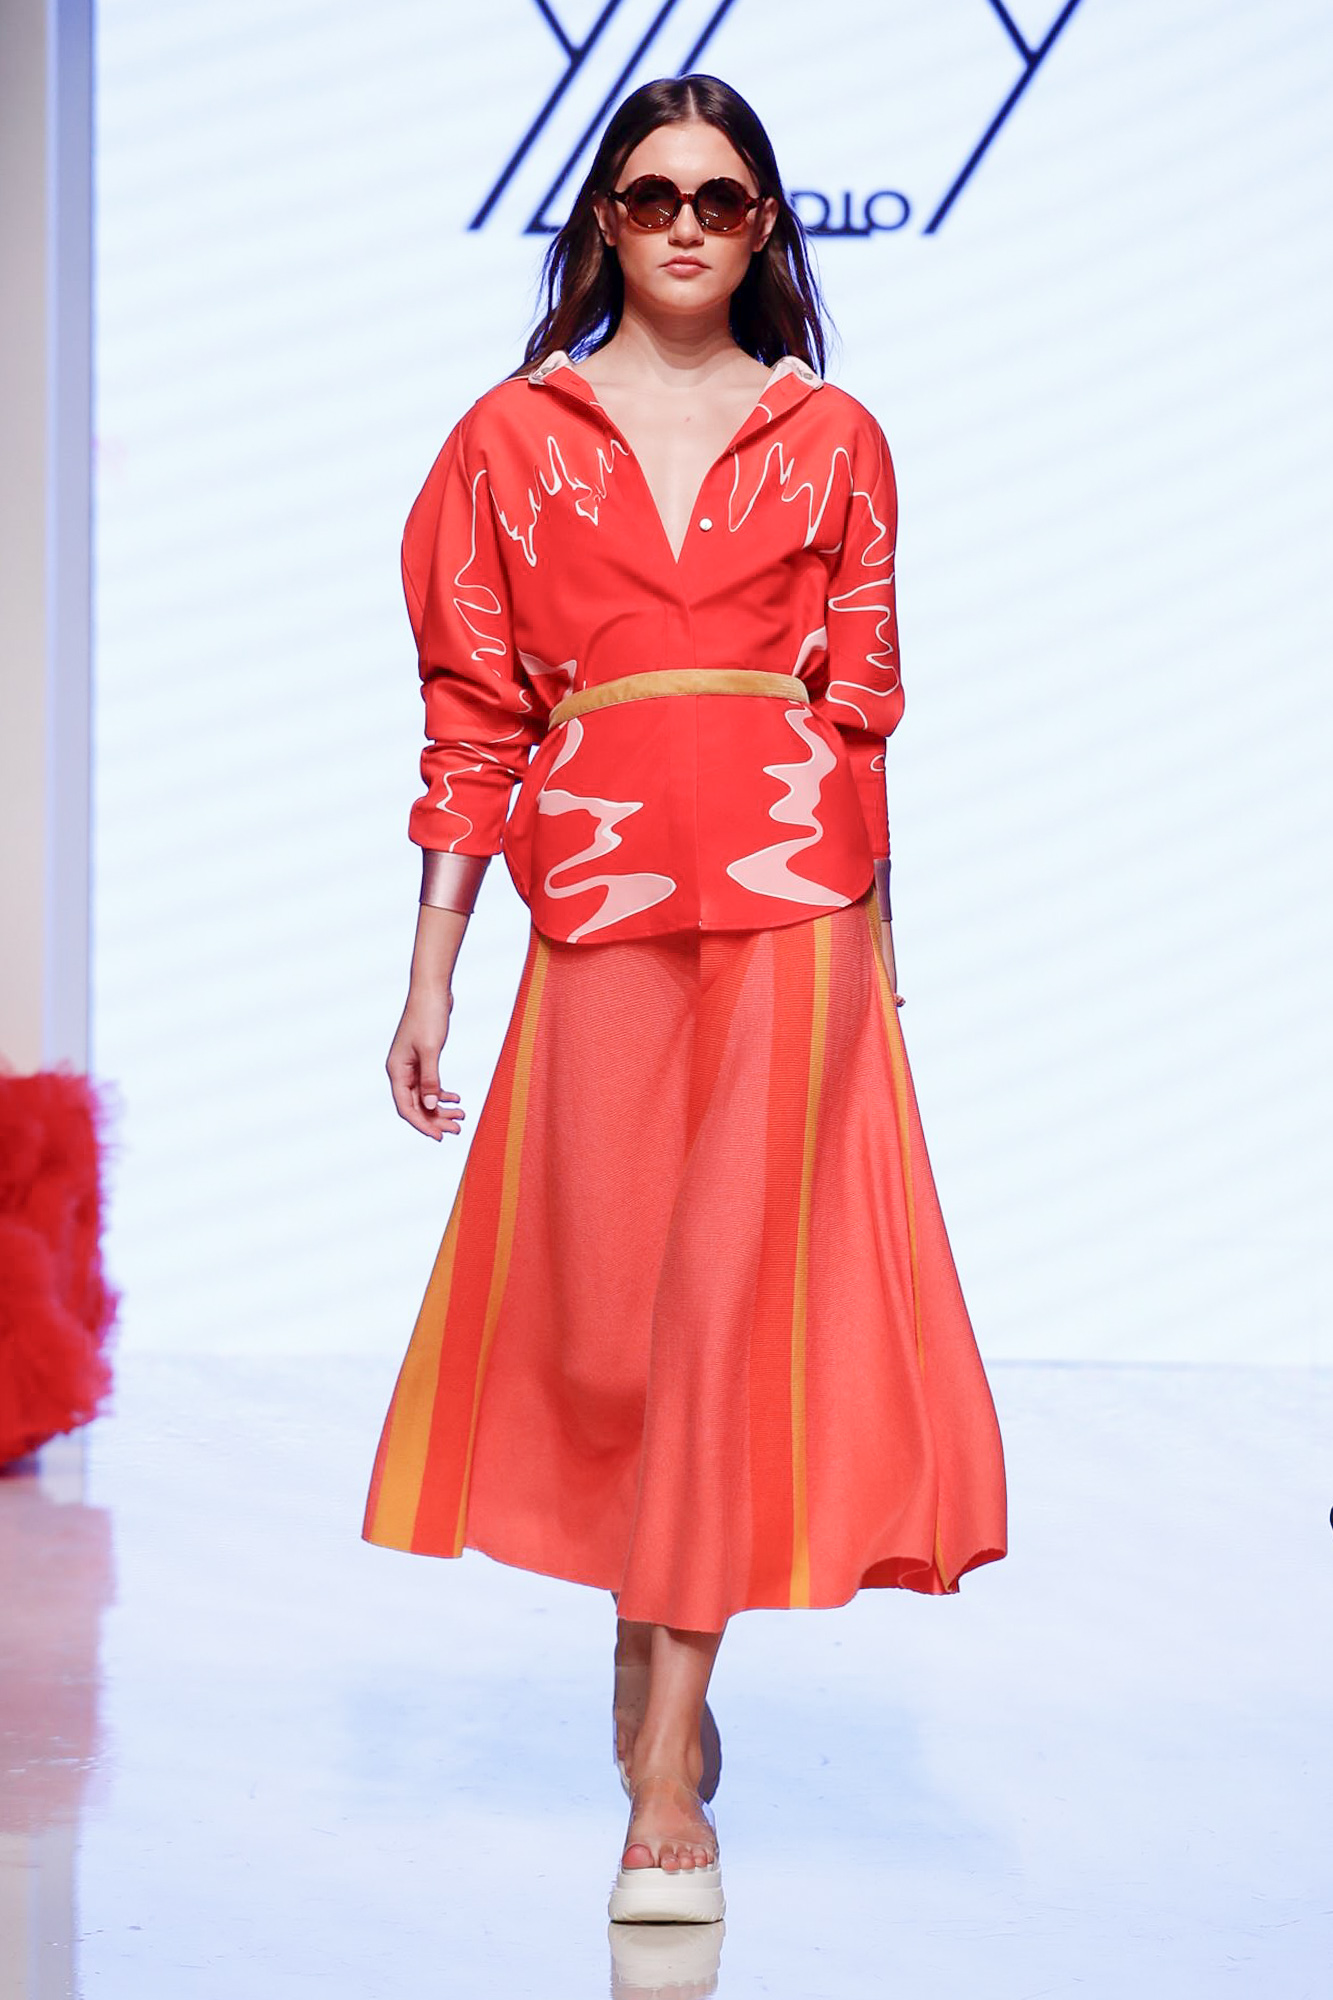 YLY-Studio-Arab-Fashion-Week-SS20-Dubai-5758